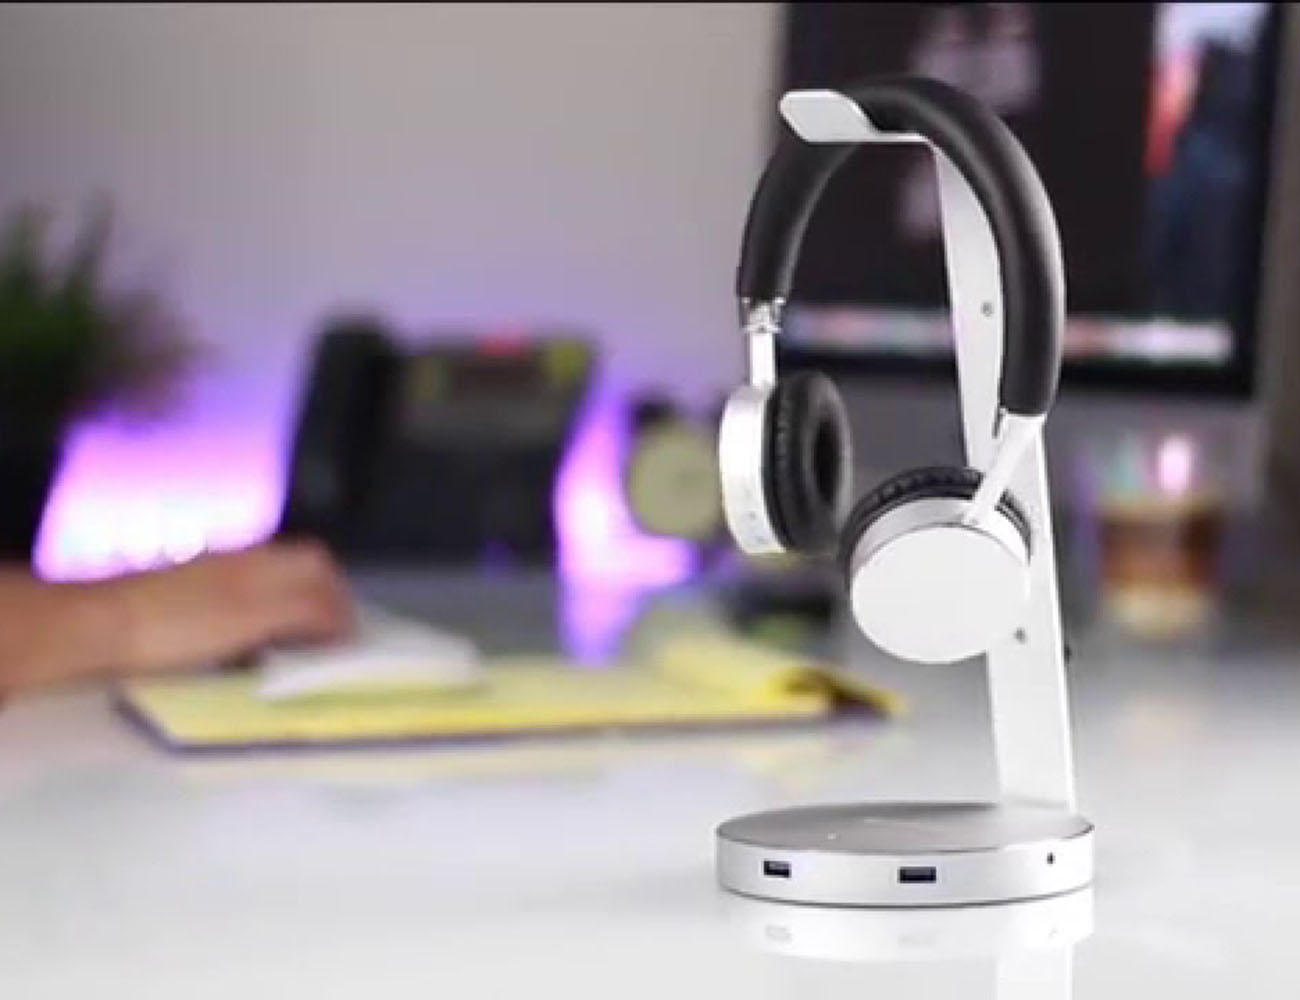 Aluminum USB 3.0 Headphone Stand by Satechi